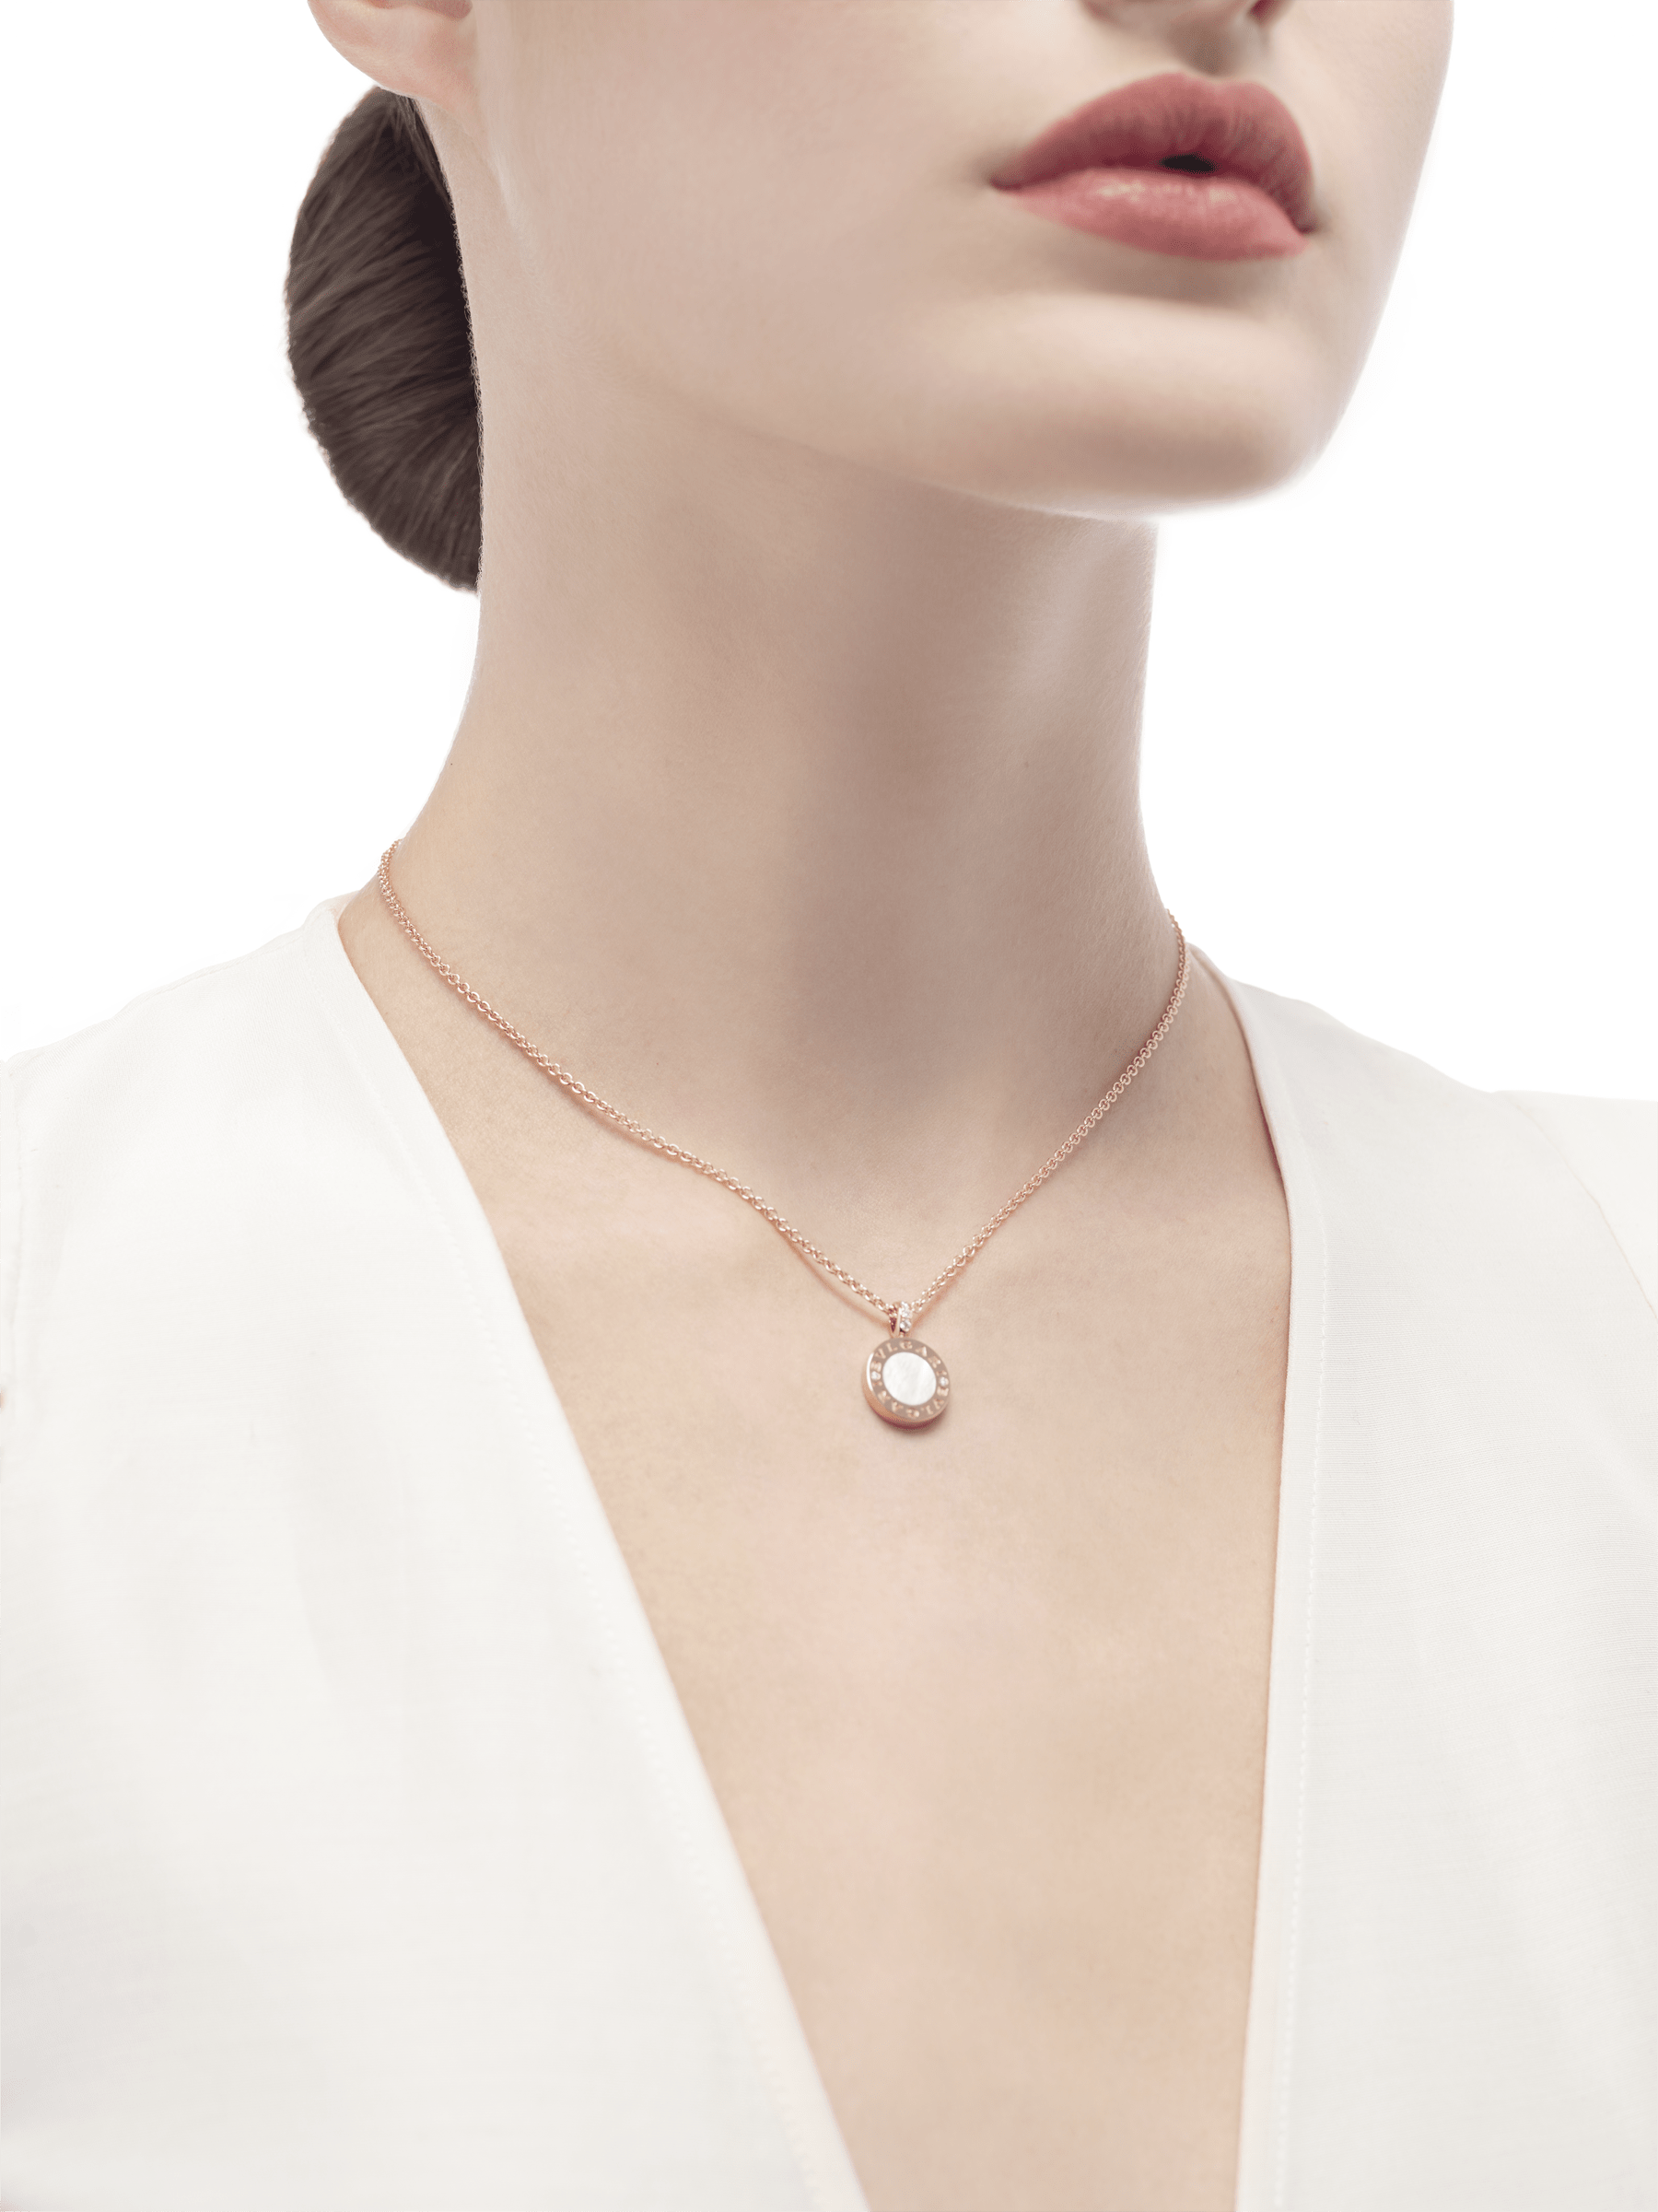 BVLGARI BVLGARI necklace with 18 kt rose gold chain and 18 kt rose gold pendant set with mother-of-pearl elements 350553 image 4